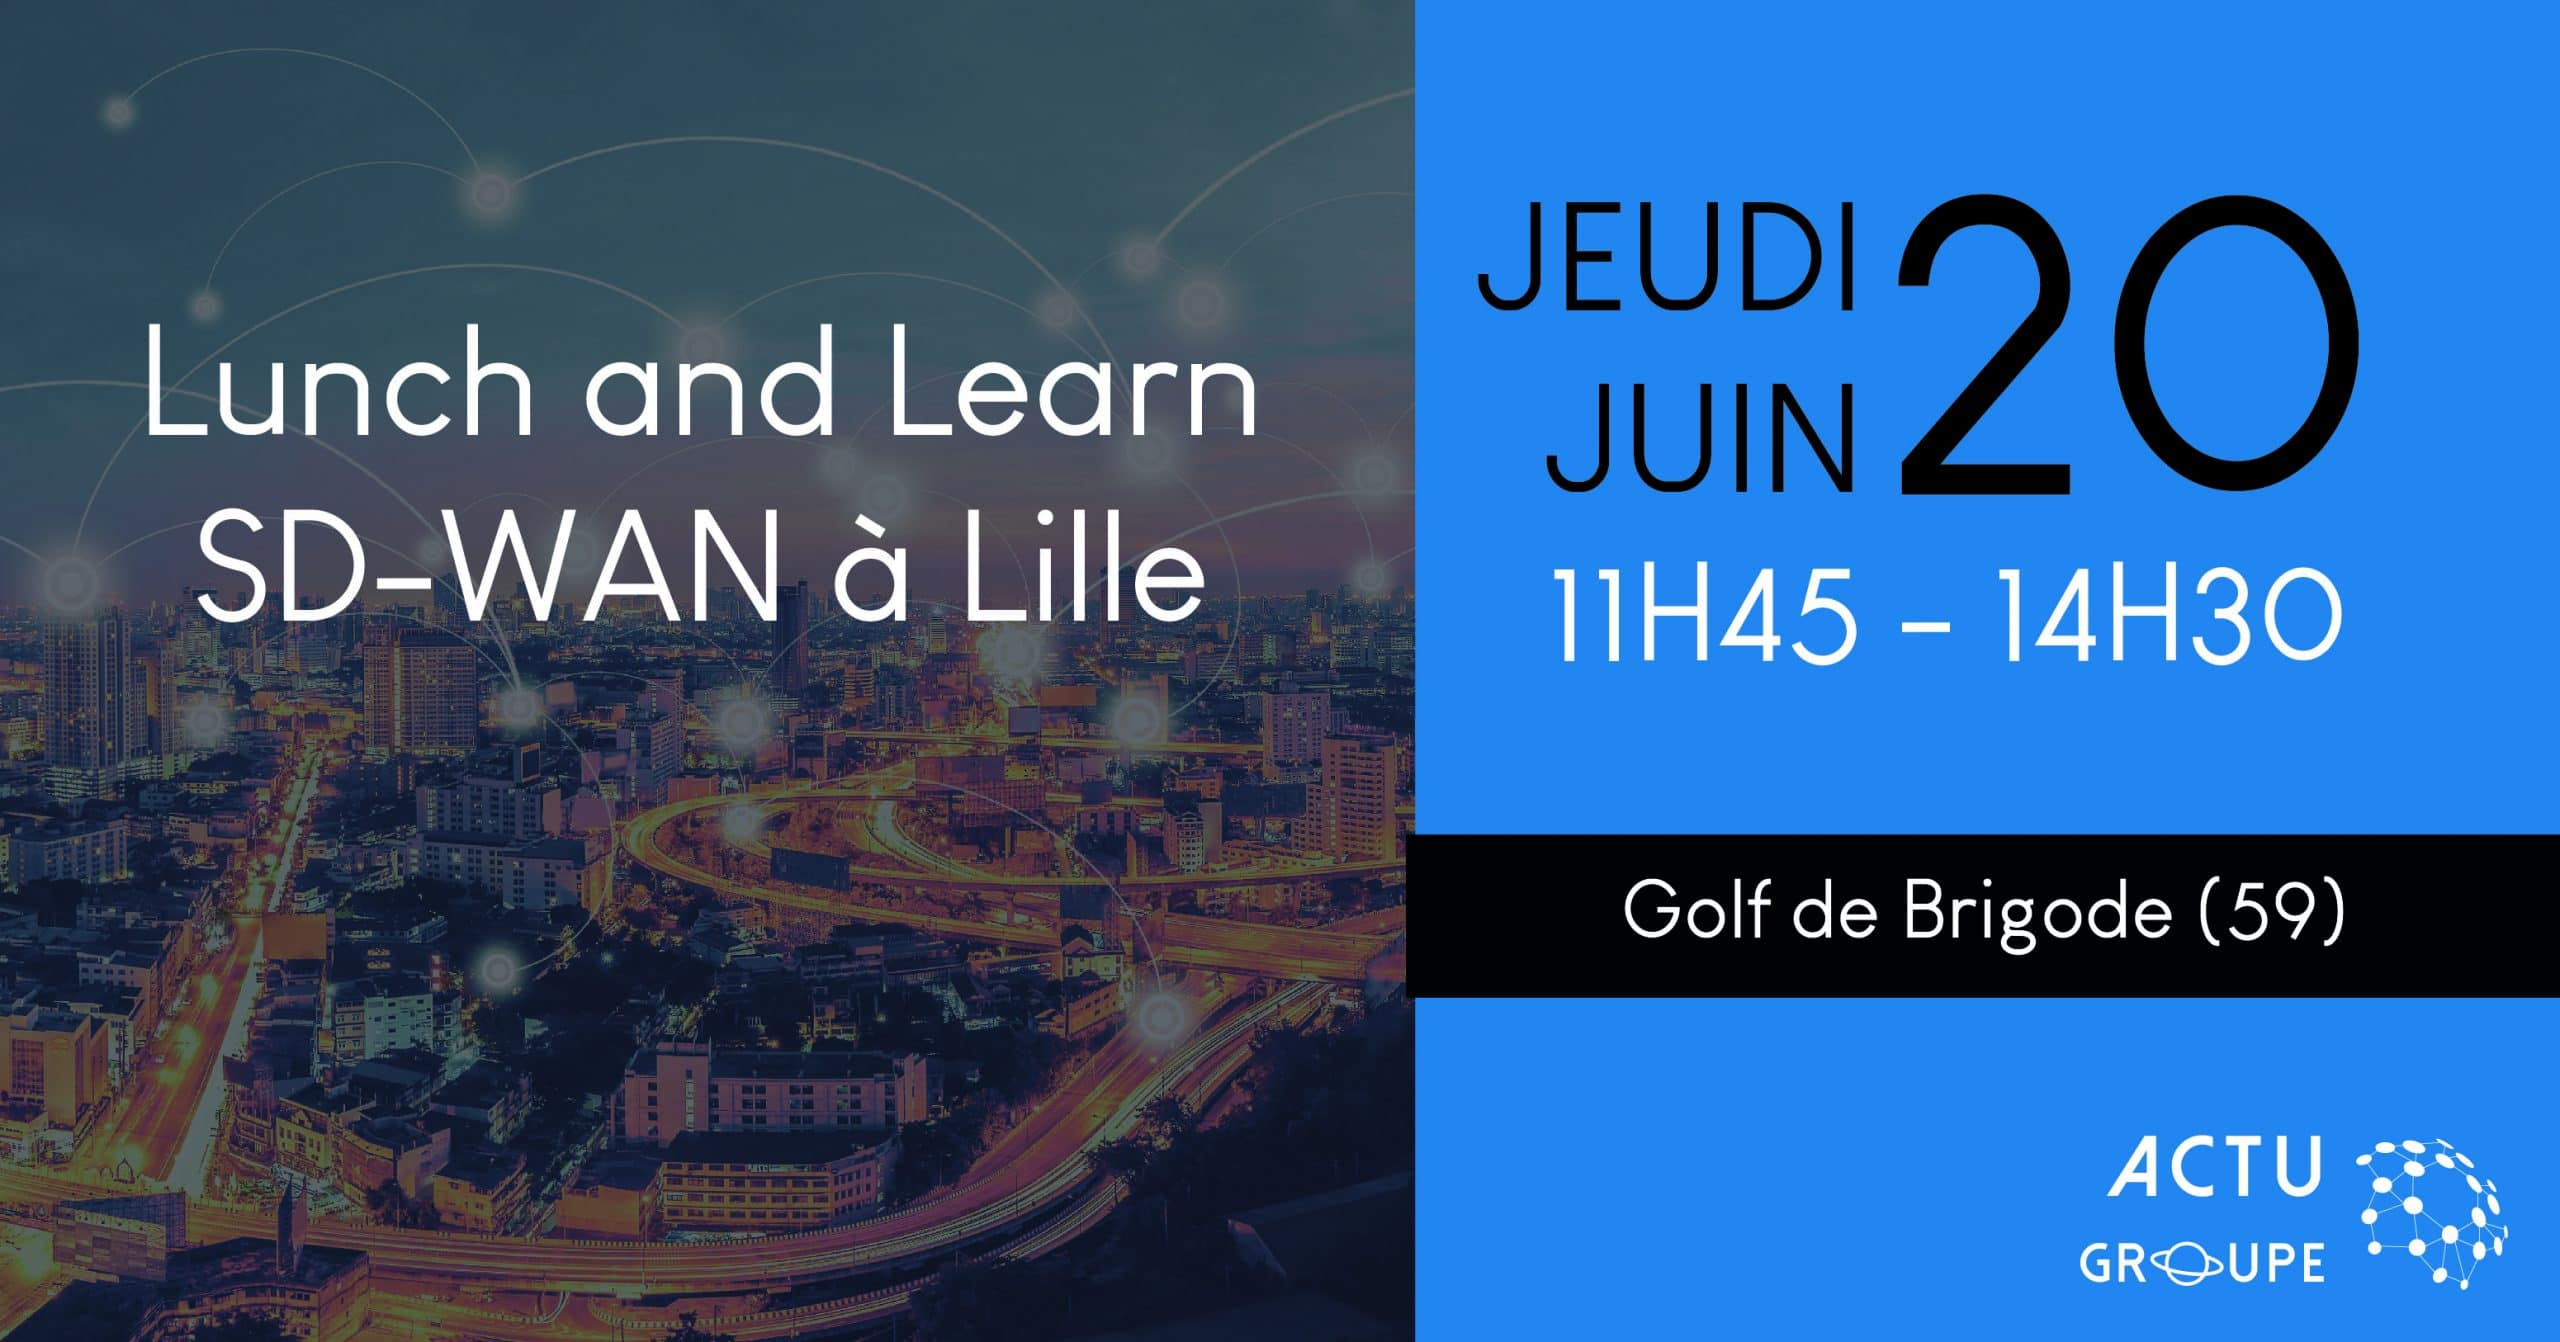 lunch_and_learn_sdwan_actu_groupe-